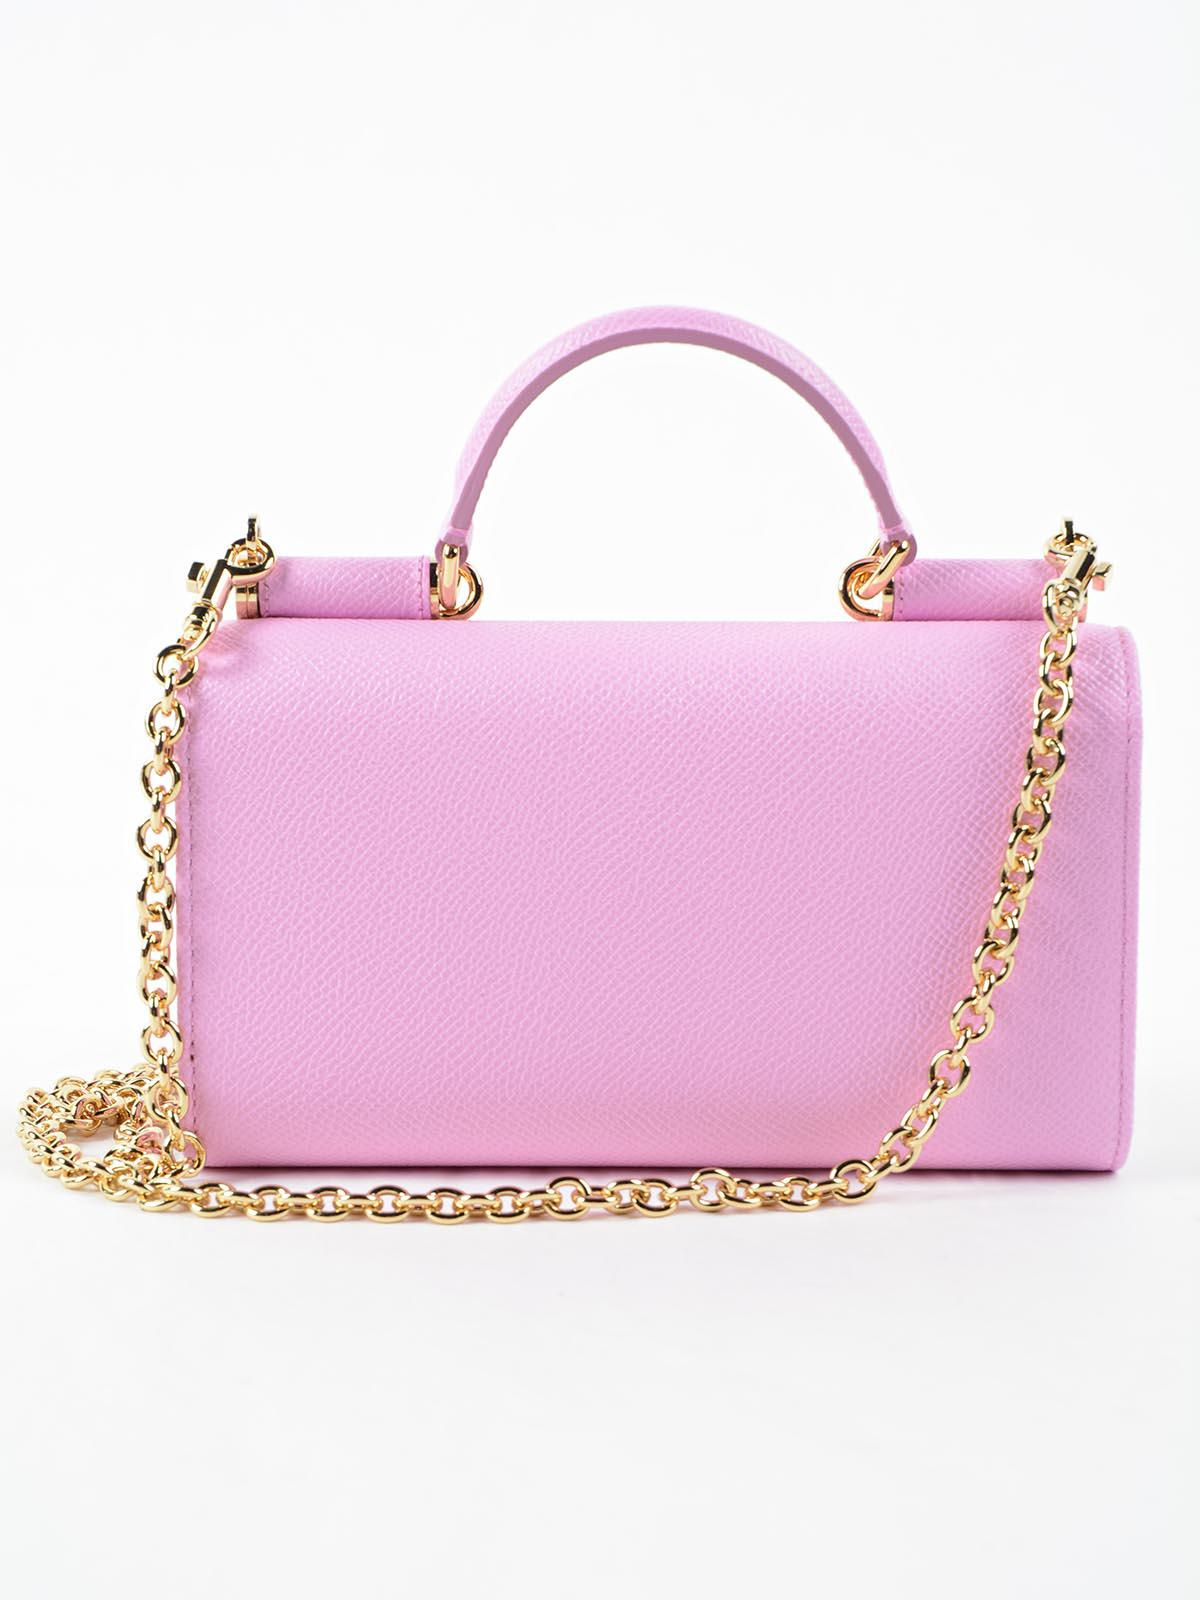 ... new arrival acb50 65e4f Lyst - Dolce Gabbana Phone Bag St.dauphine in  Pink ... 9876247cf5810